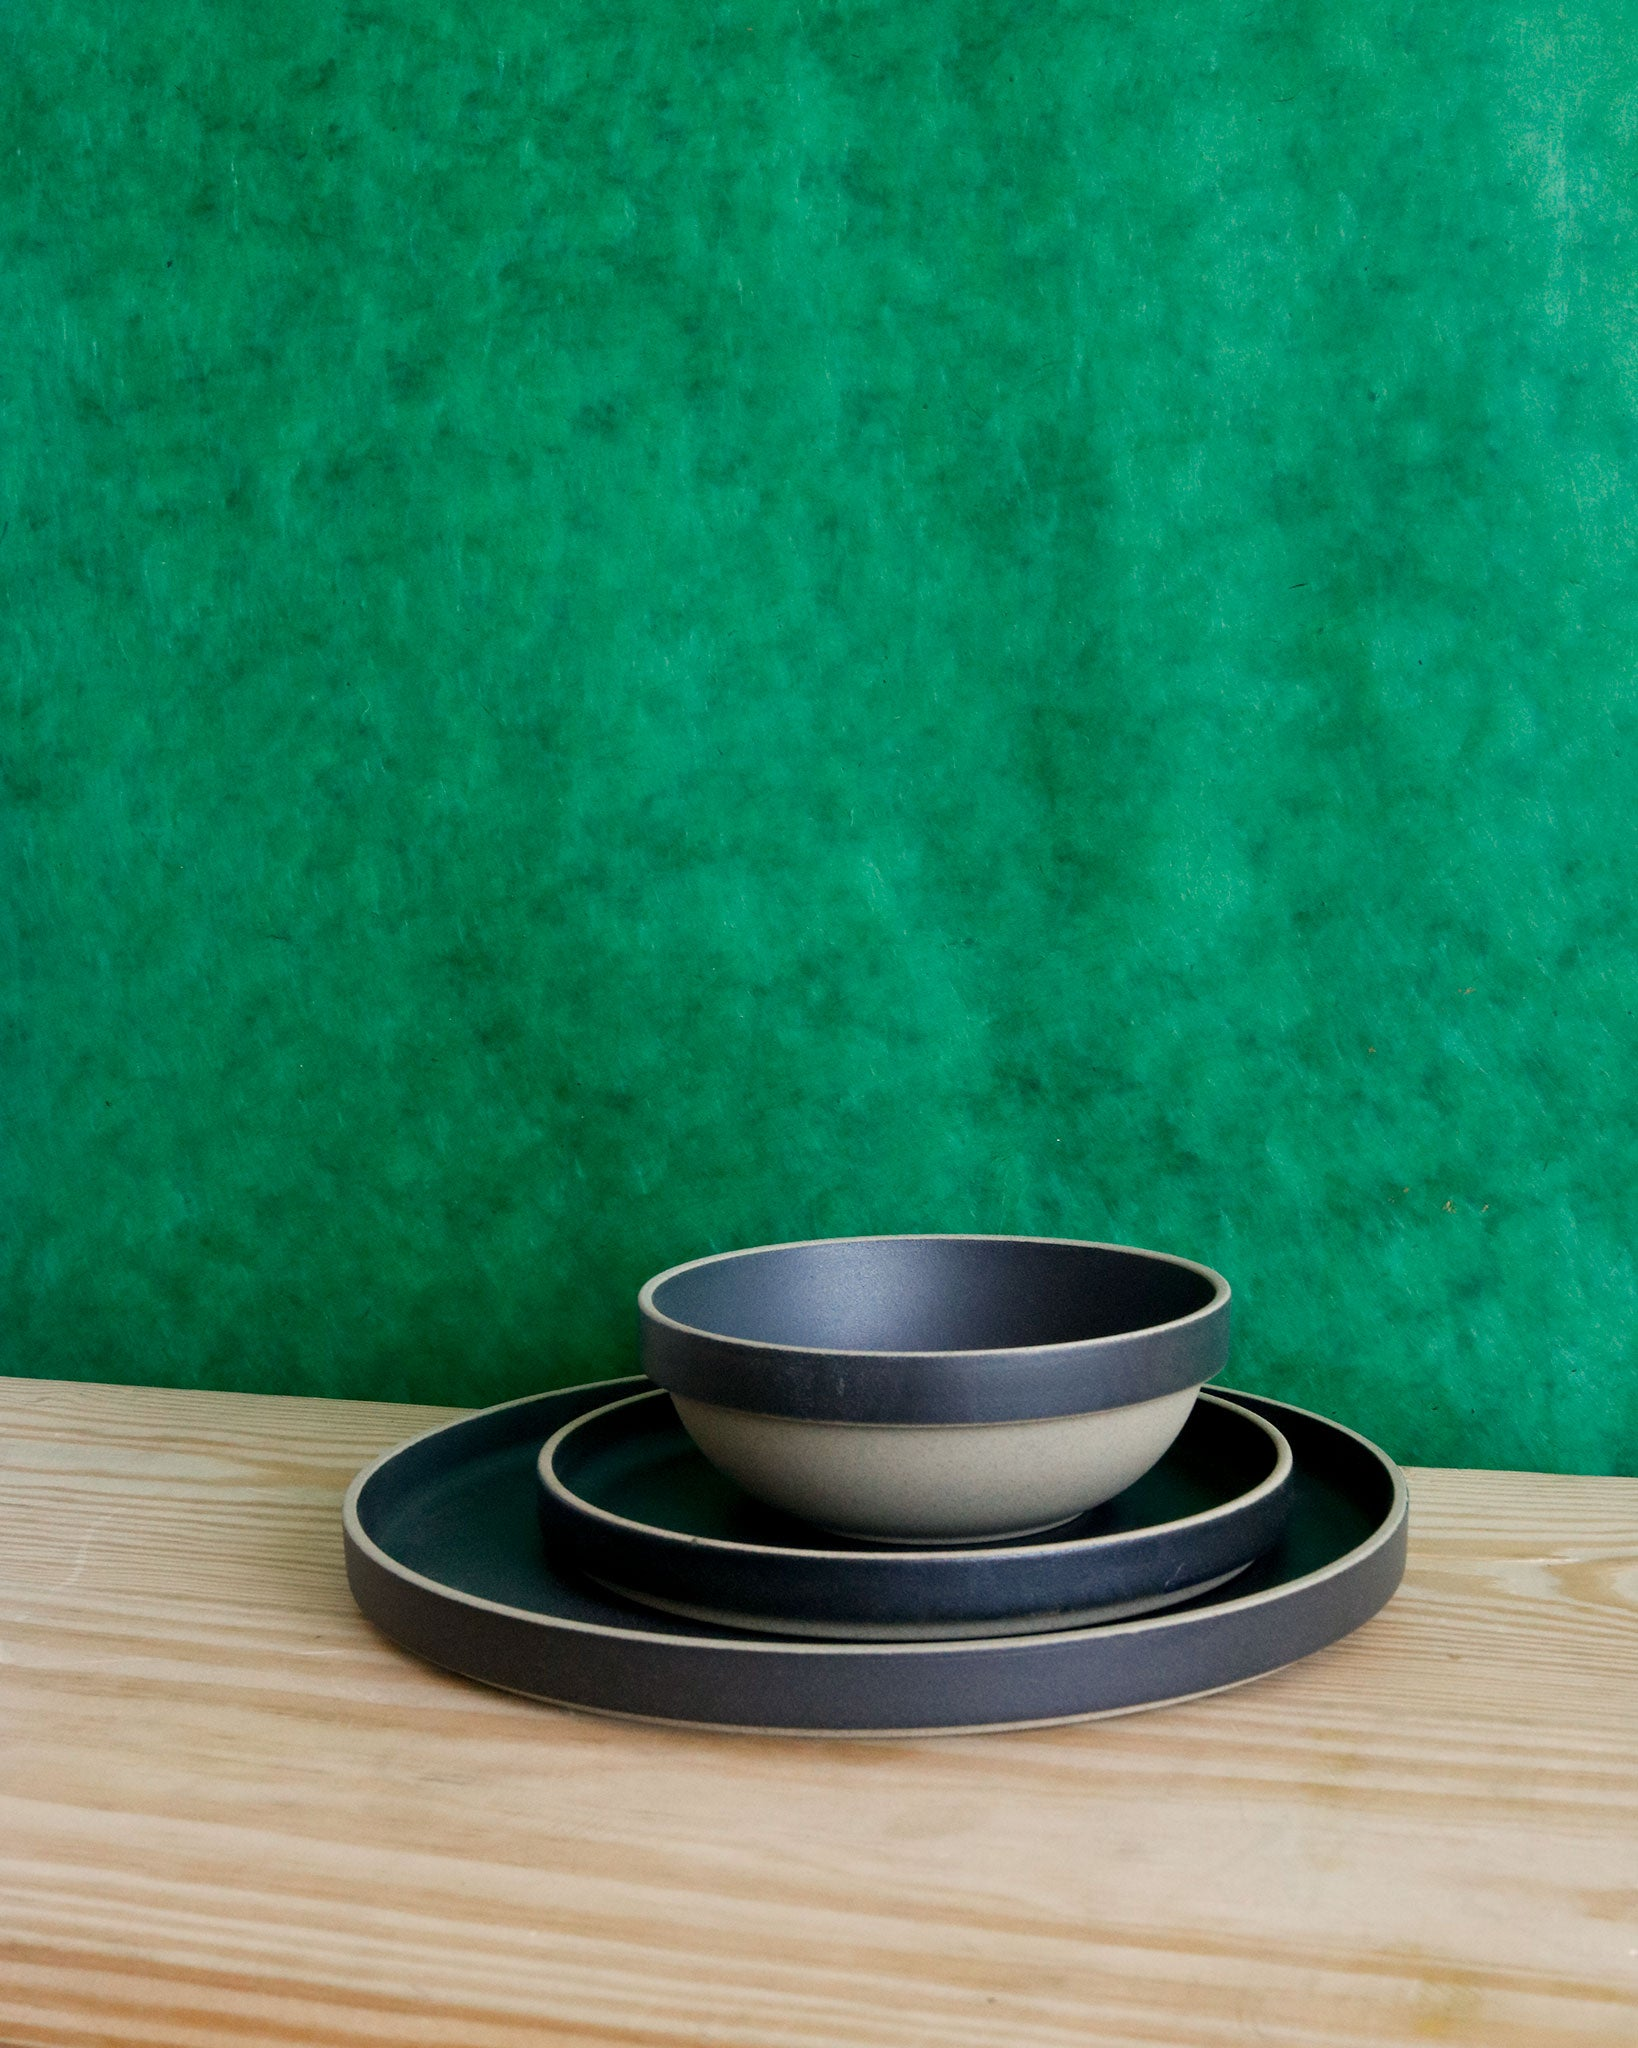 Hasami Porcelain in Black